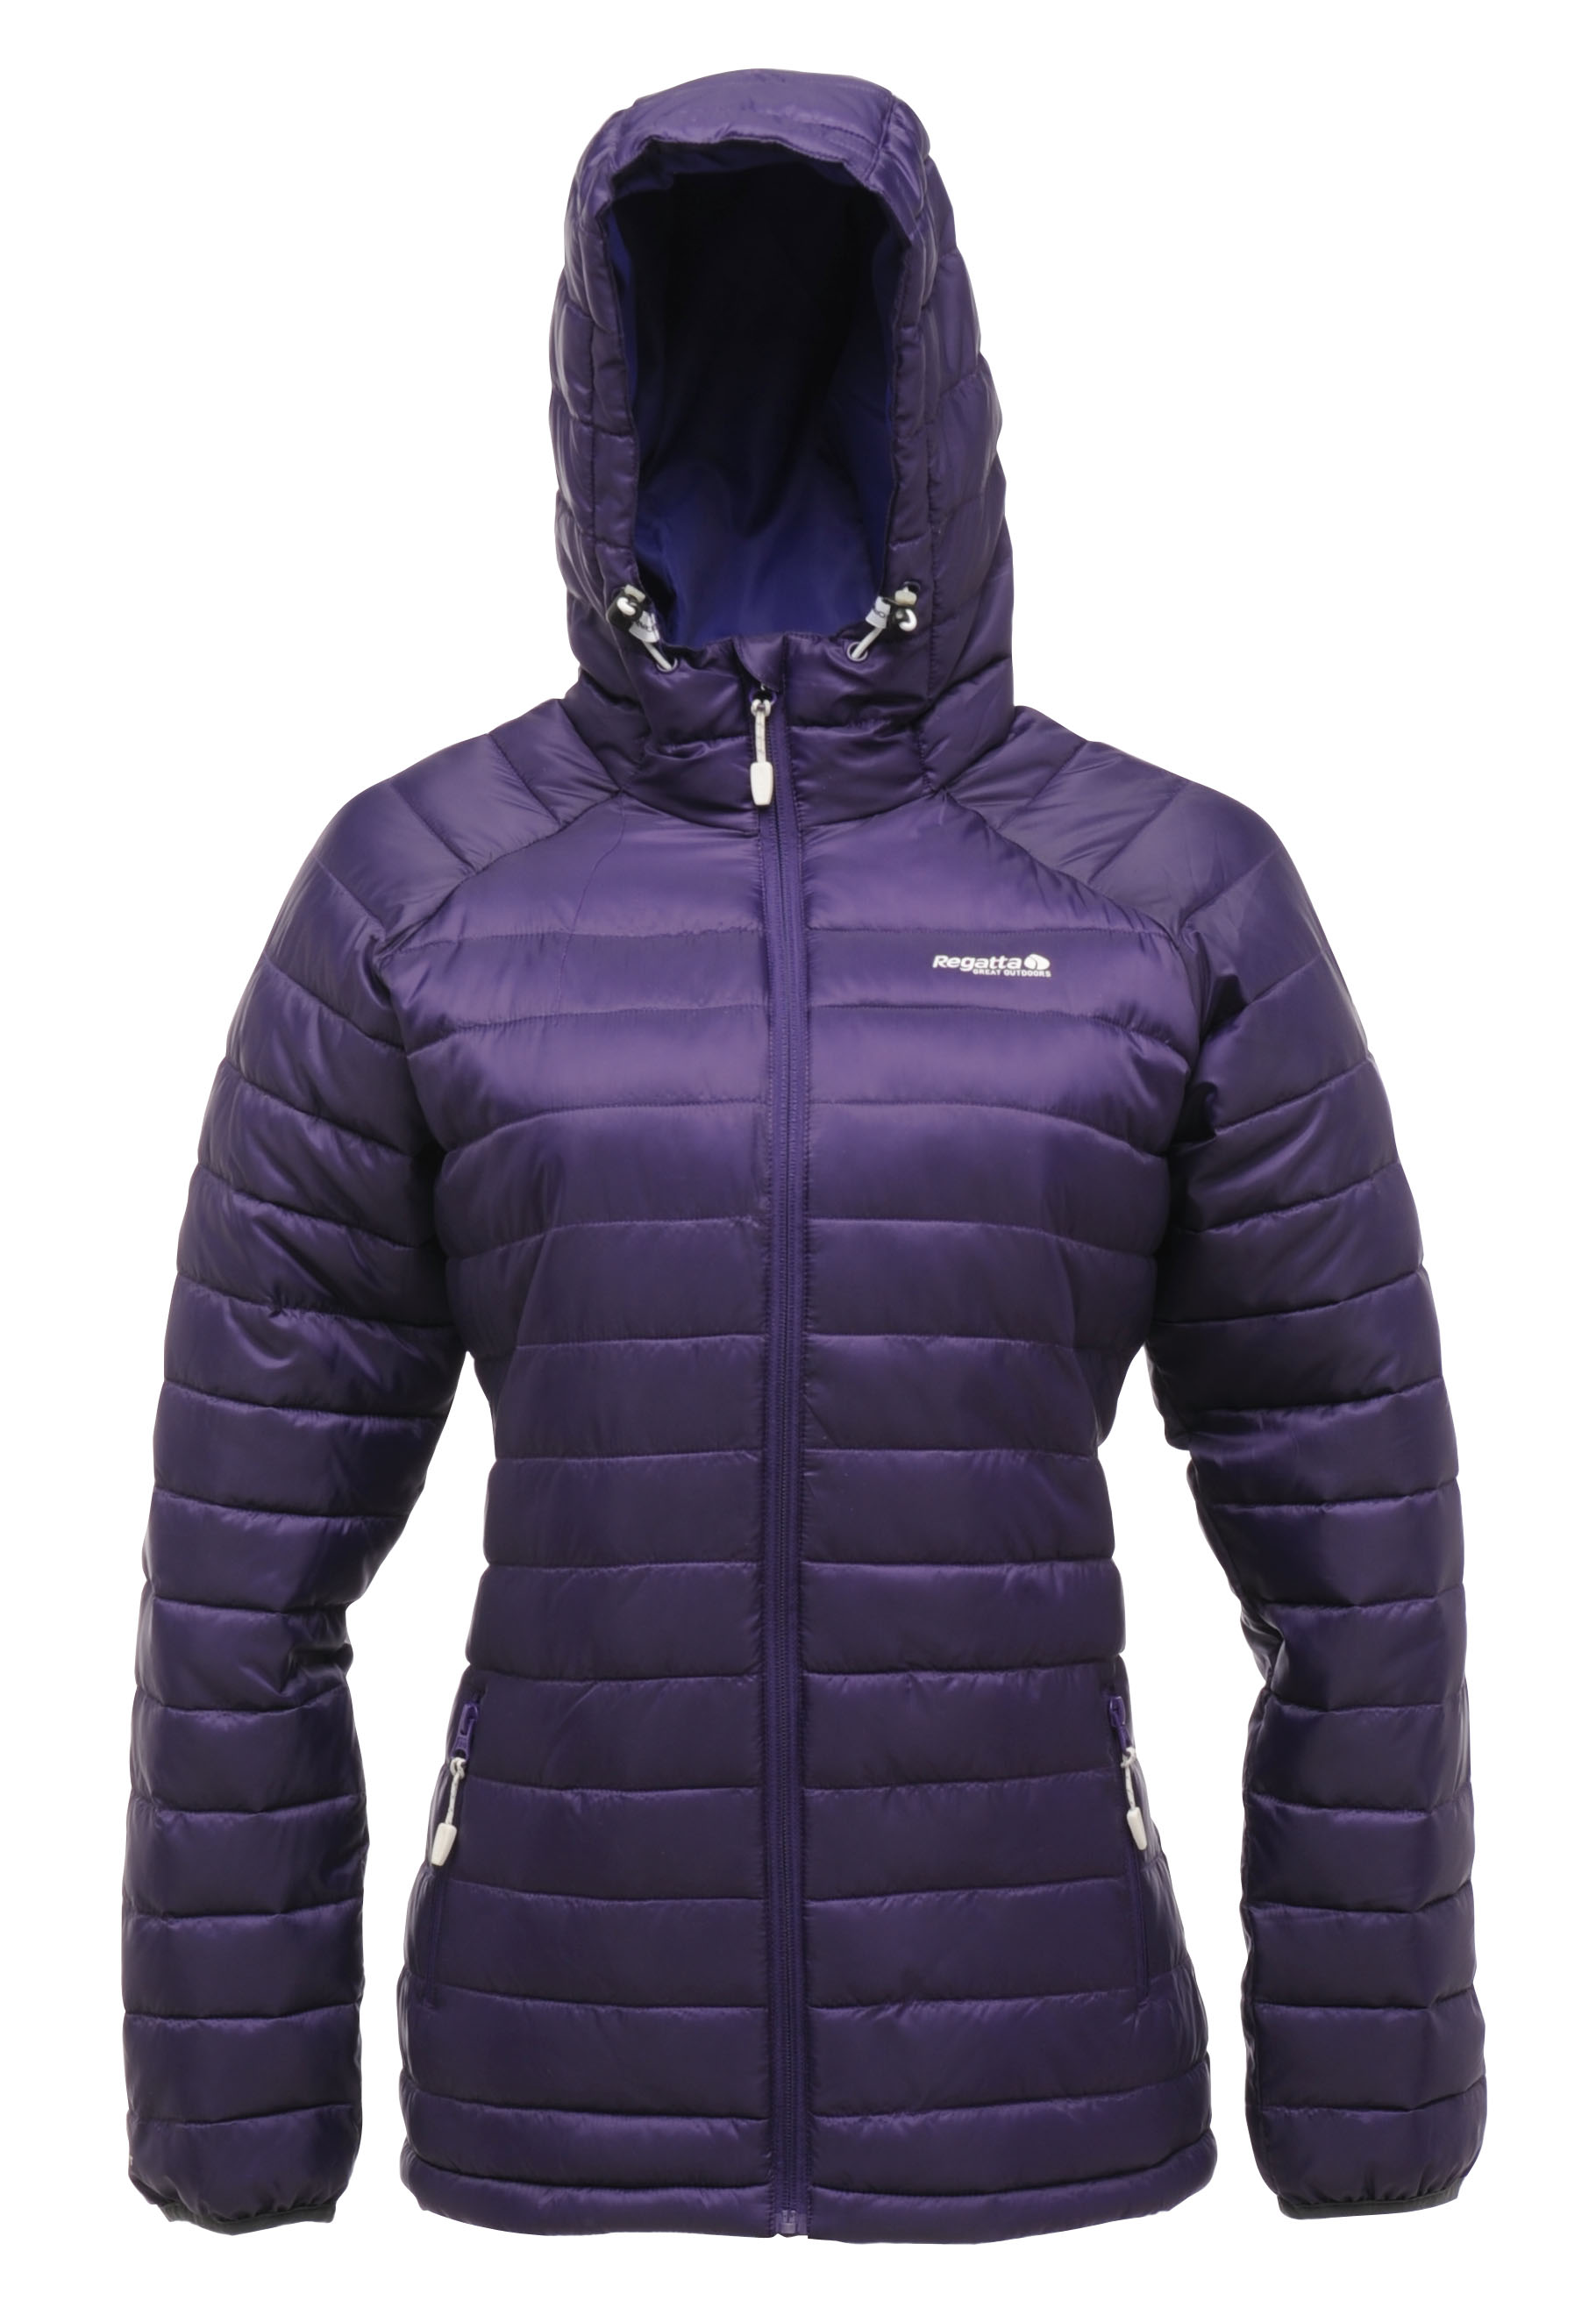 Regatta Iceline Women's Down Jacket